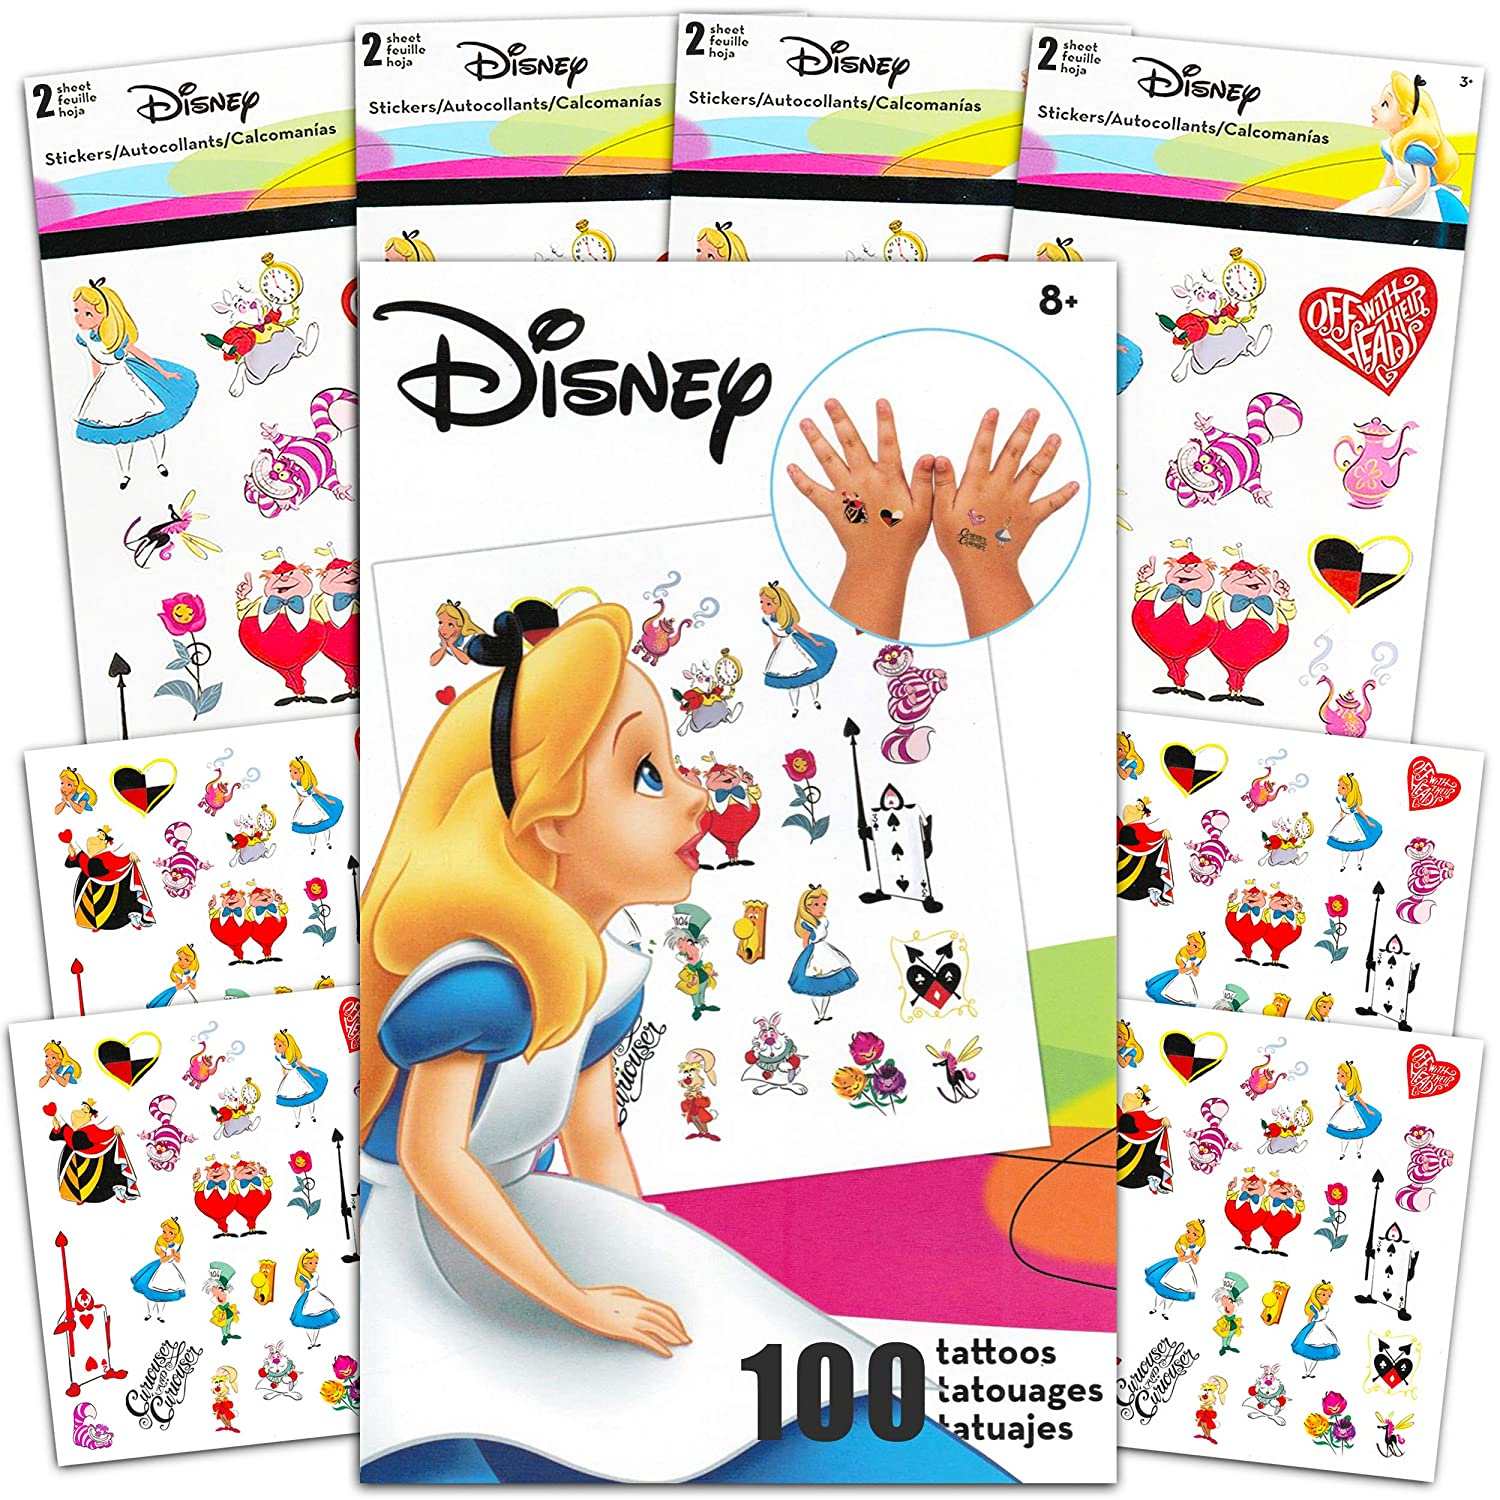 Alice in Wonderland Party Supplies Disney Alice in Wonderland Sticker and Tattoos Party Favors Super Set ~ Bundle Includes Over 200 Wonderland Temporary Tattoos and Stickers